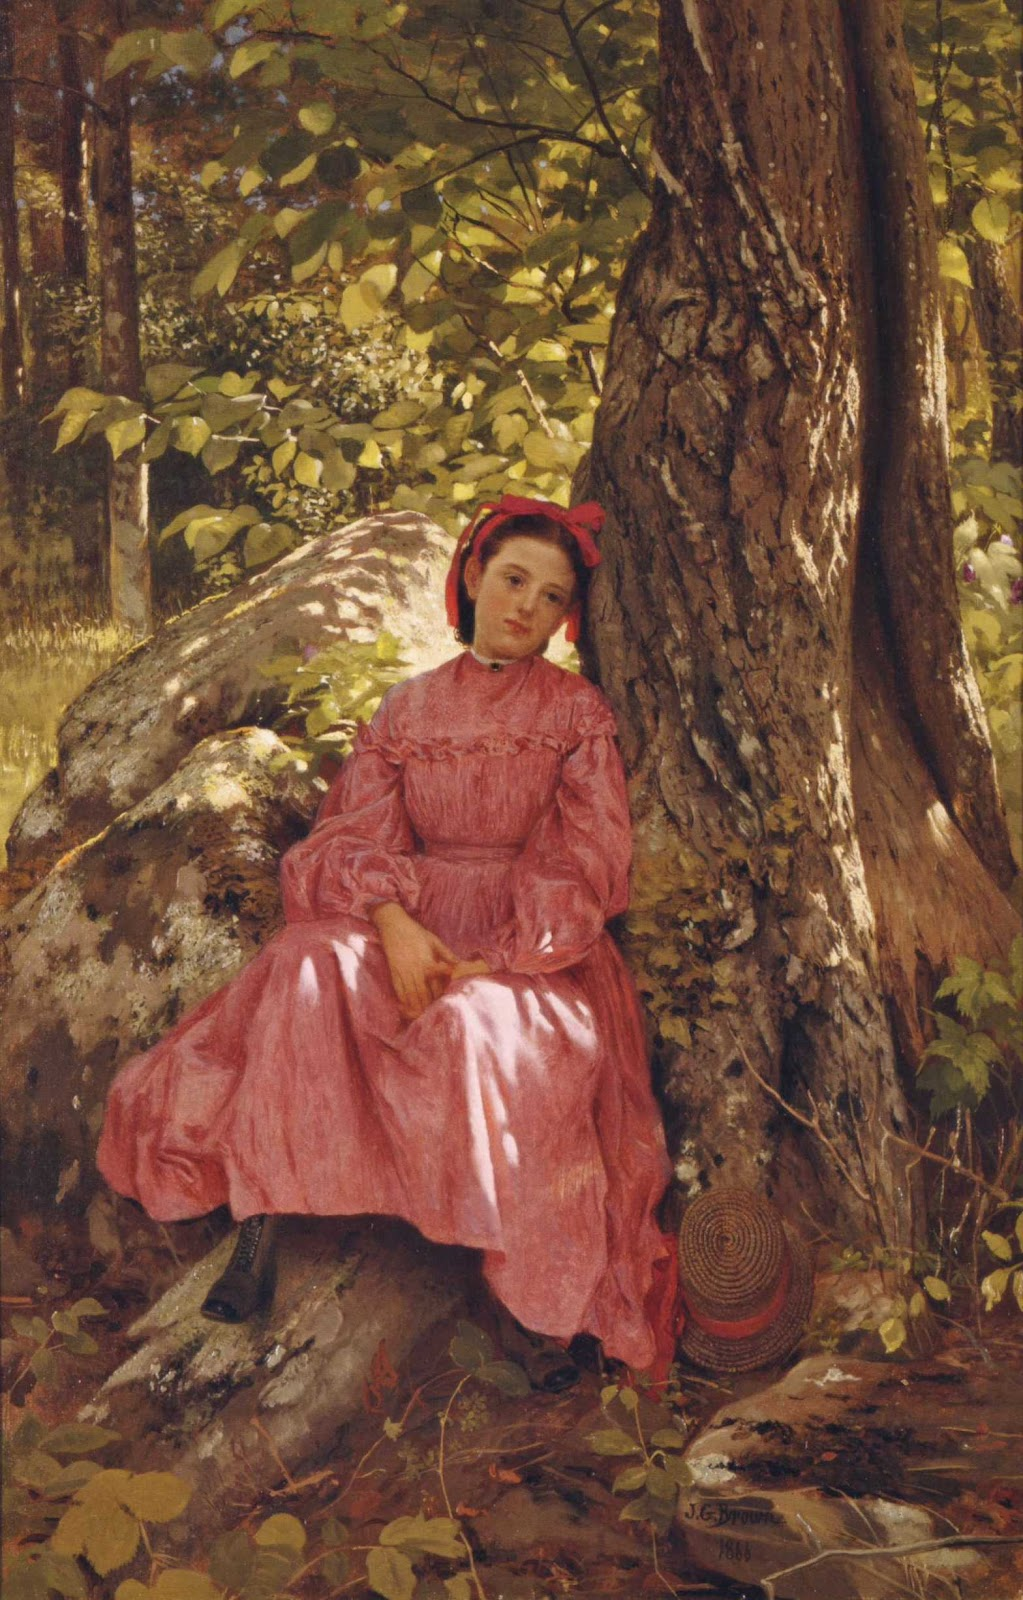 The Woods Wood Be Quiet If No Birds Sang Except The Best: 19th Century American Paintings: John George Brown, Ctd